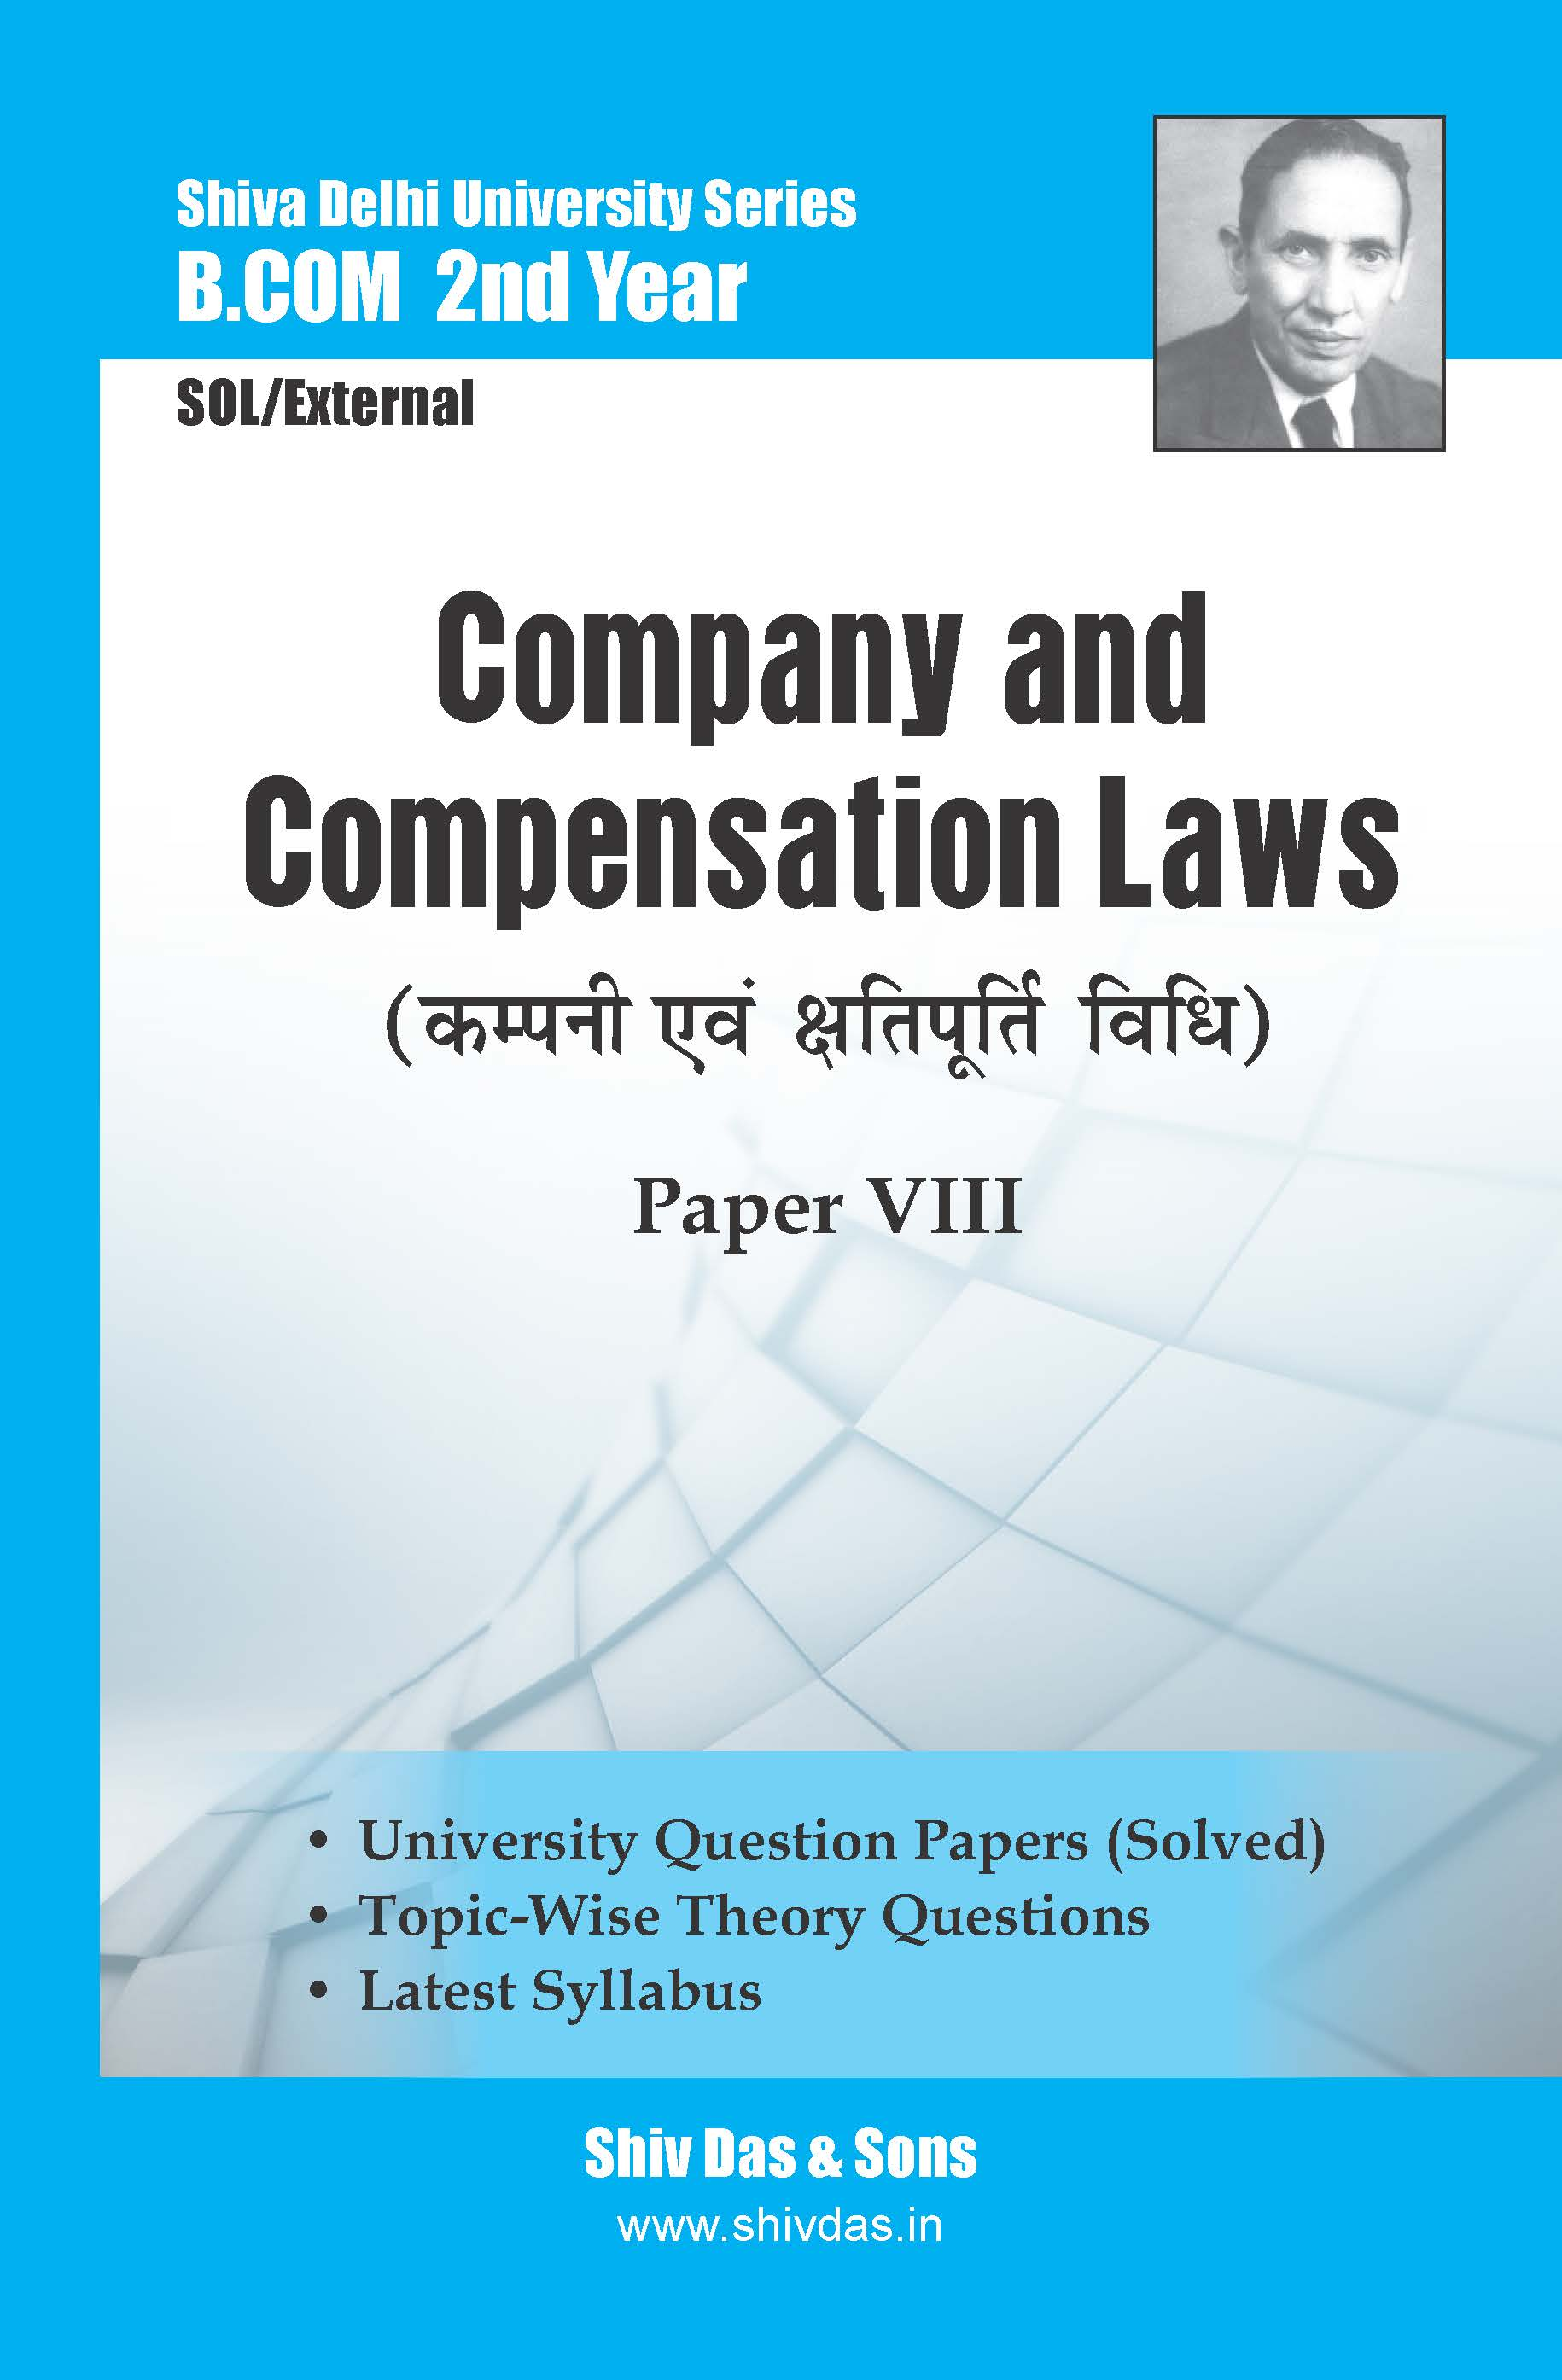 B.Com-2nd Year-SOL/External- Company and Compensation Laws (Hindi Medium)-Shiv Das-Delhi University Series